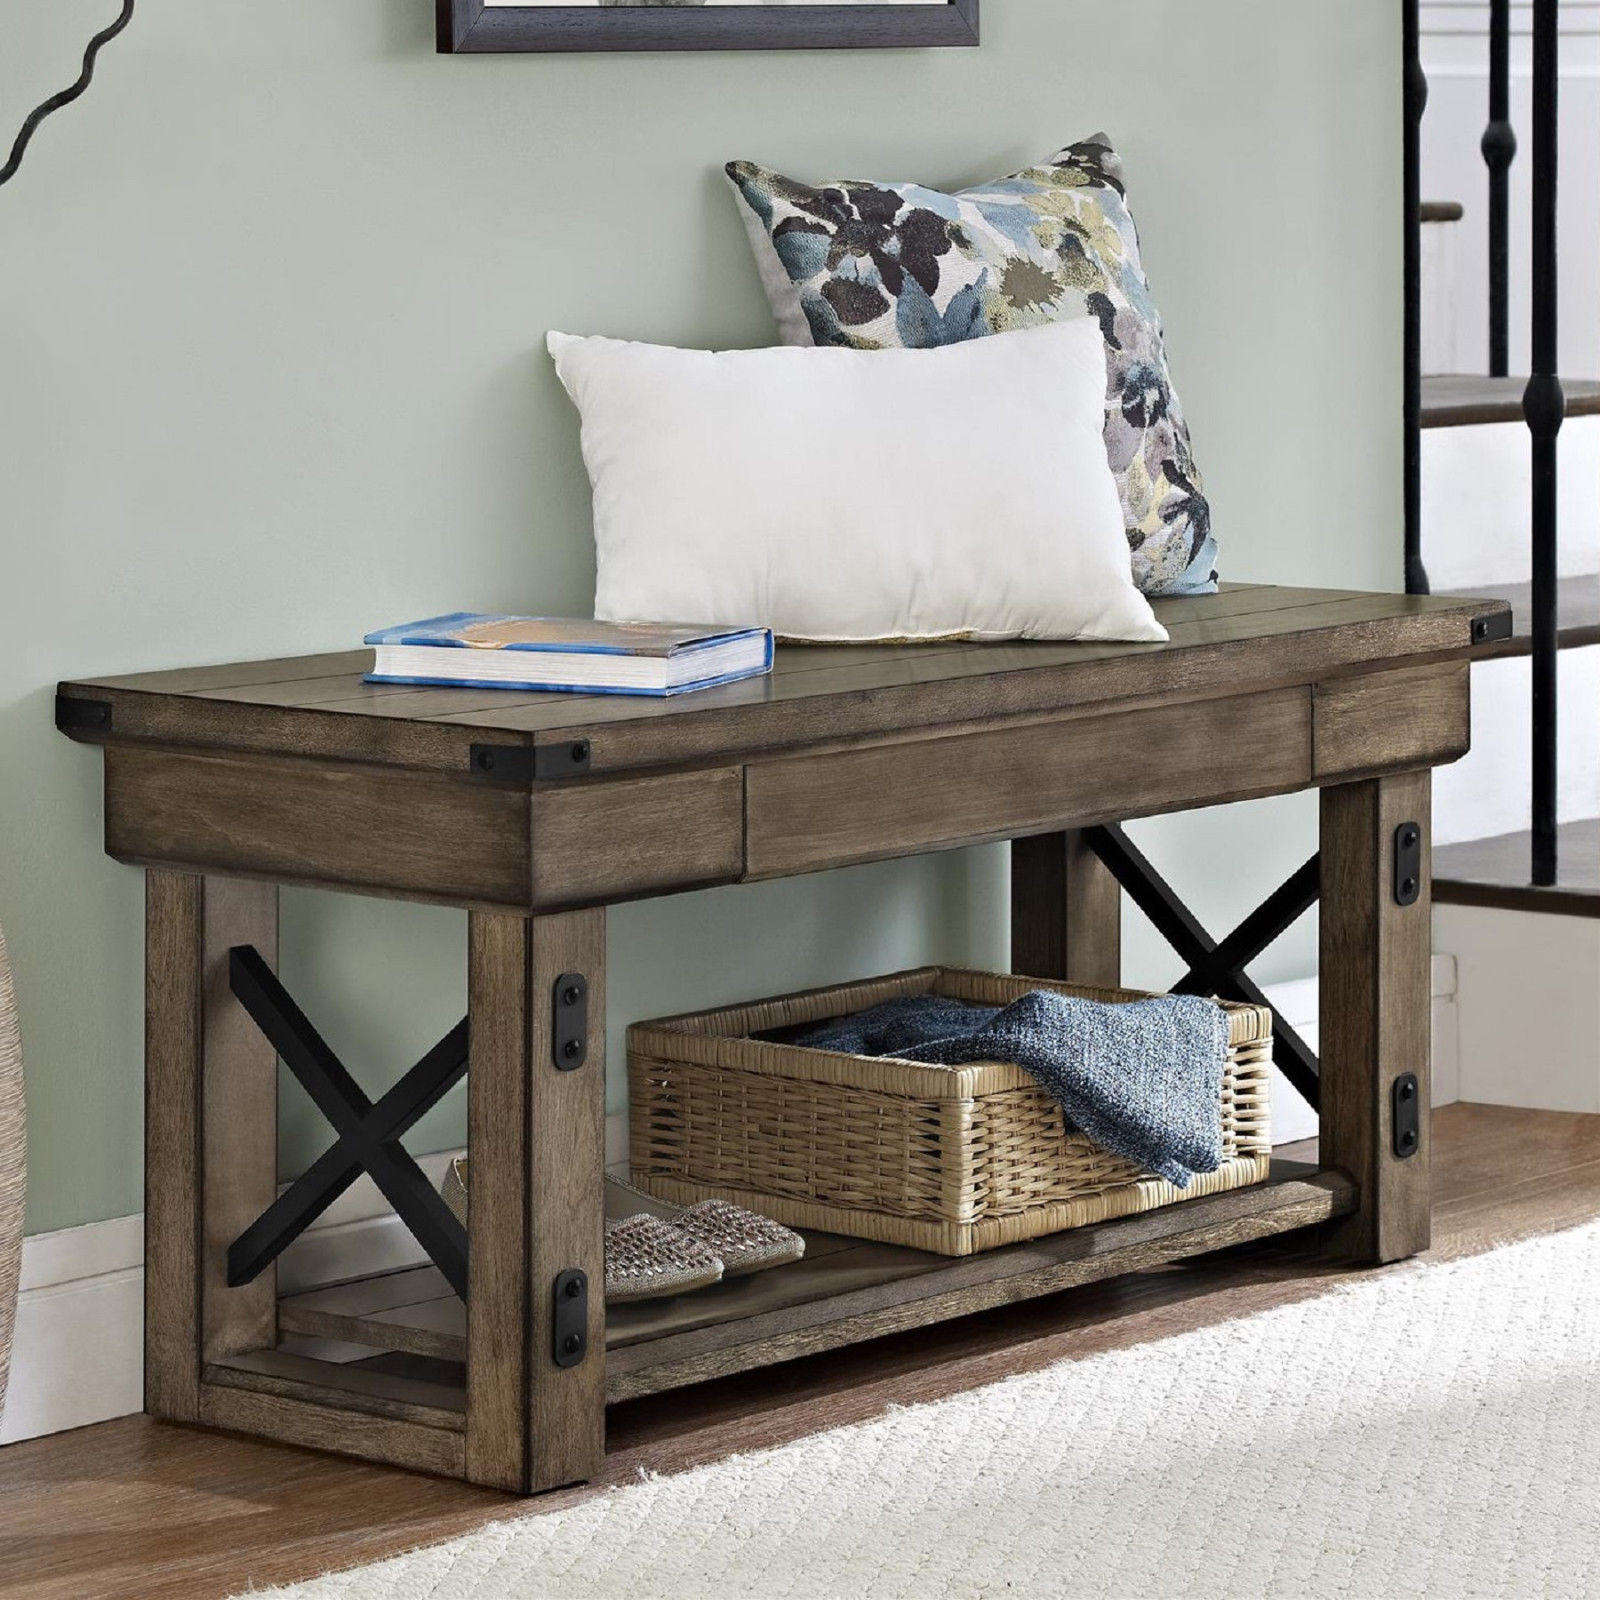 Entryway Storage Bench Rustic Hallway From Cindictc On Ebay